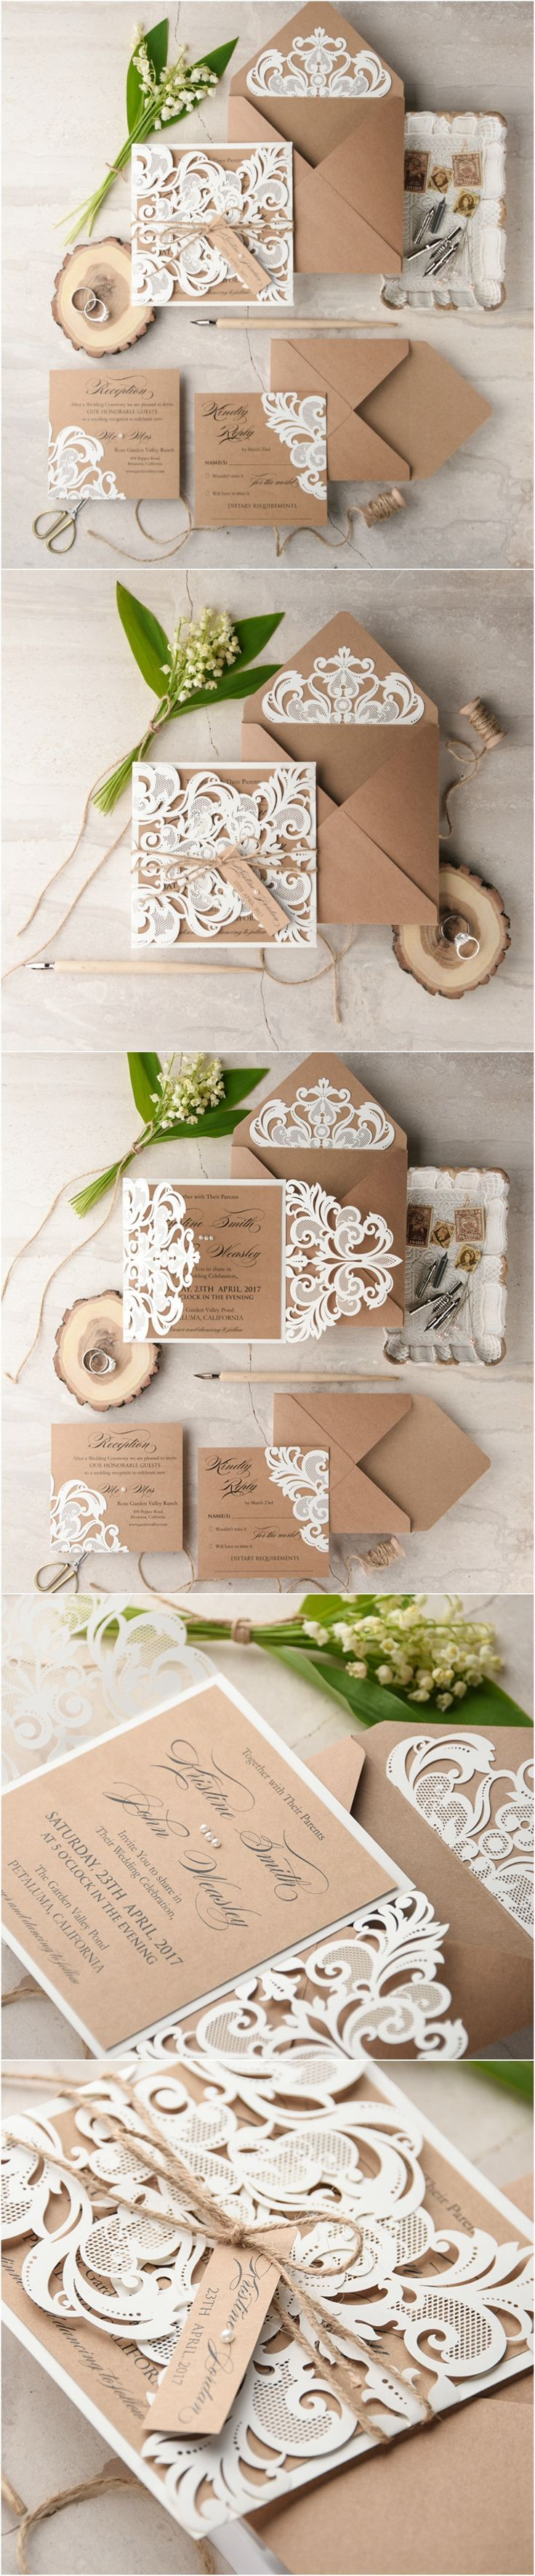 Laser cut lace rustic romantic wedding invitations from